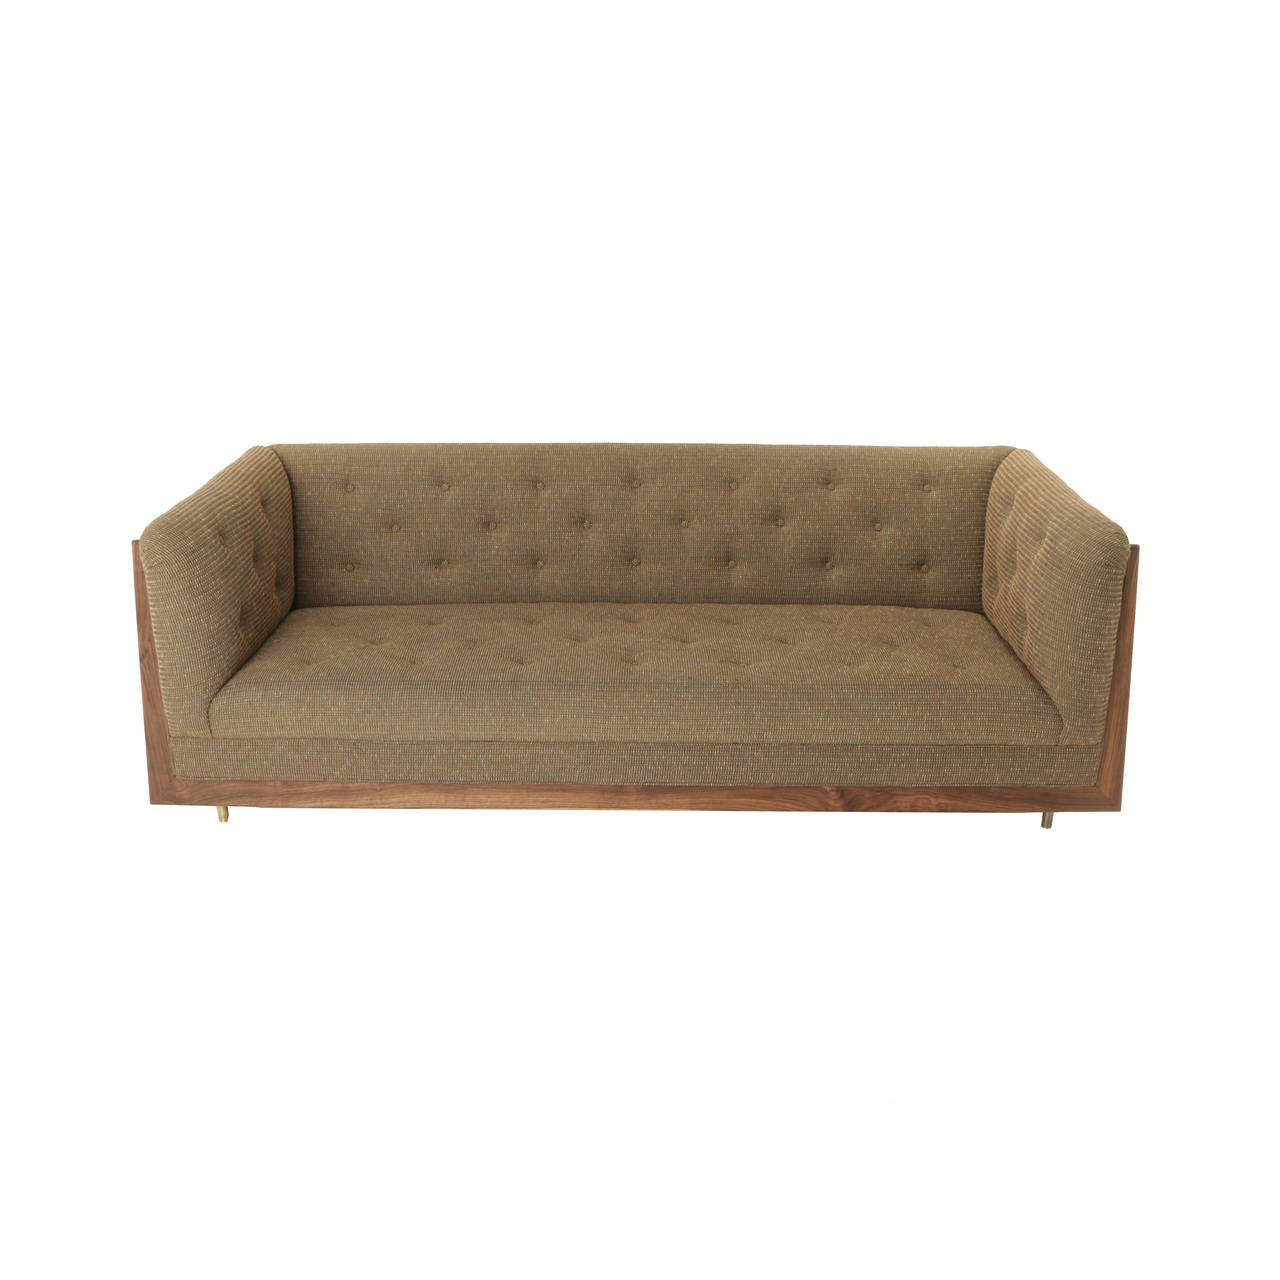 Oiled Hannah Sofa with Walnut Spines and Bronze Legs by Thomas Hayes Studio For Sale